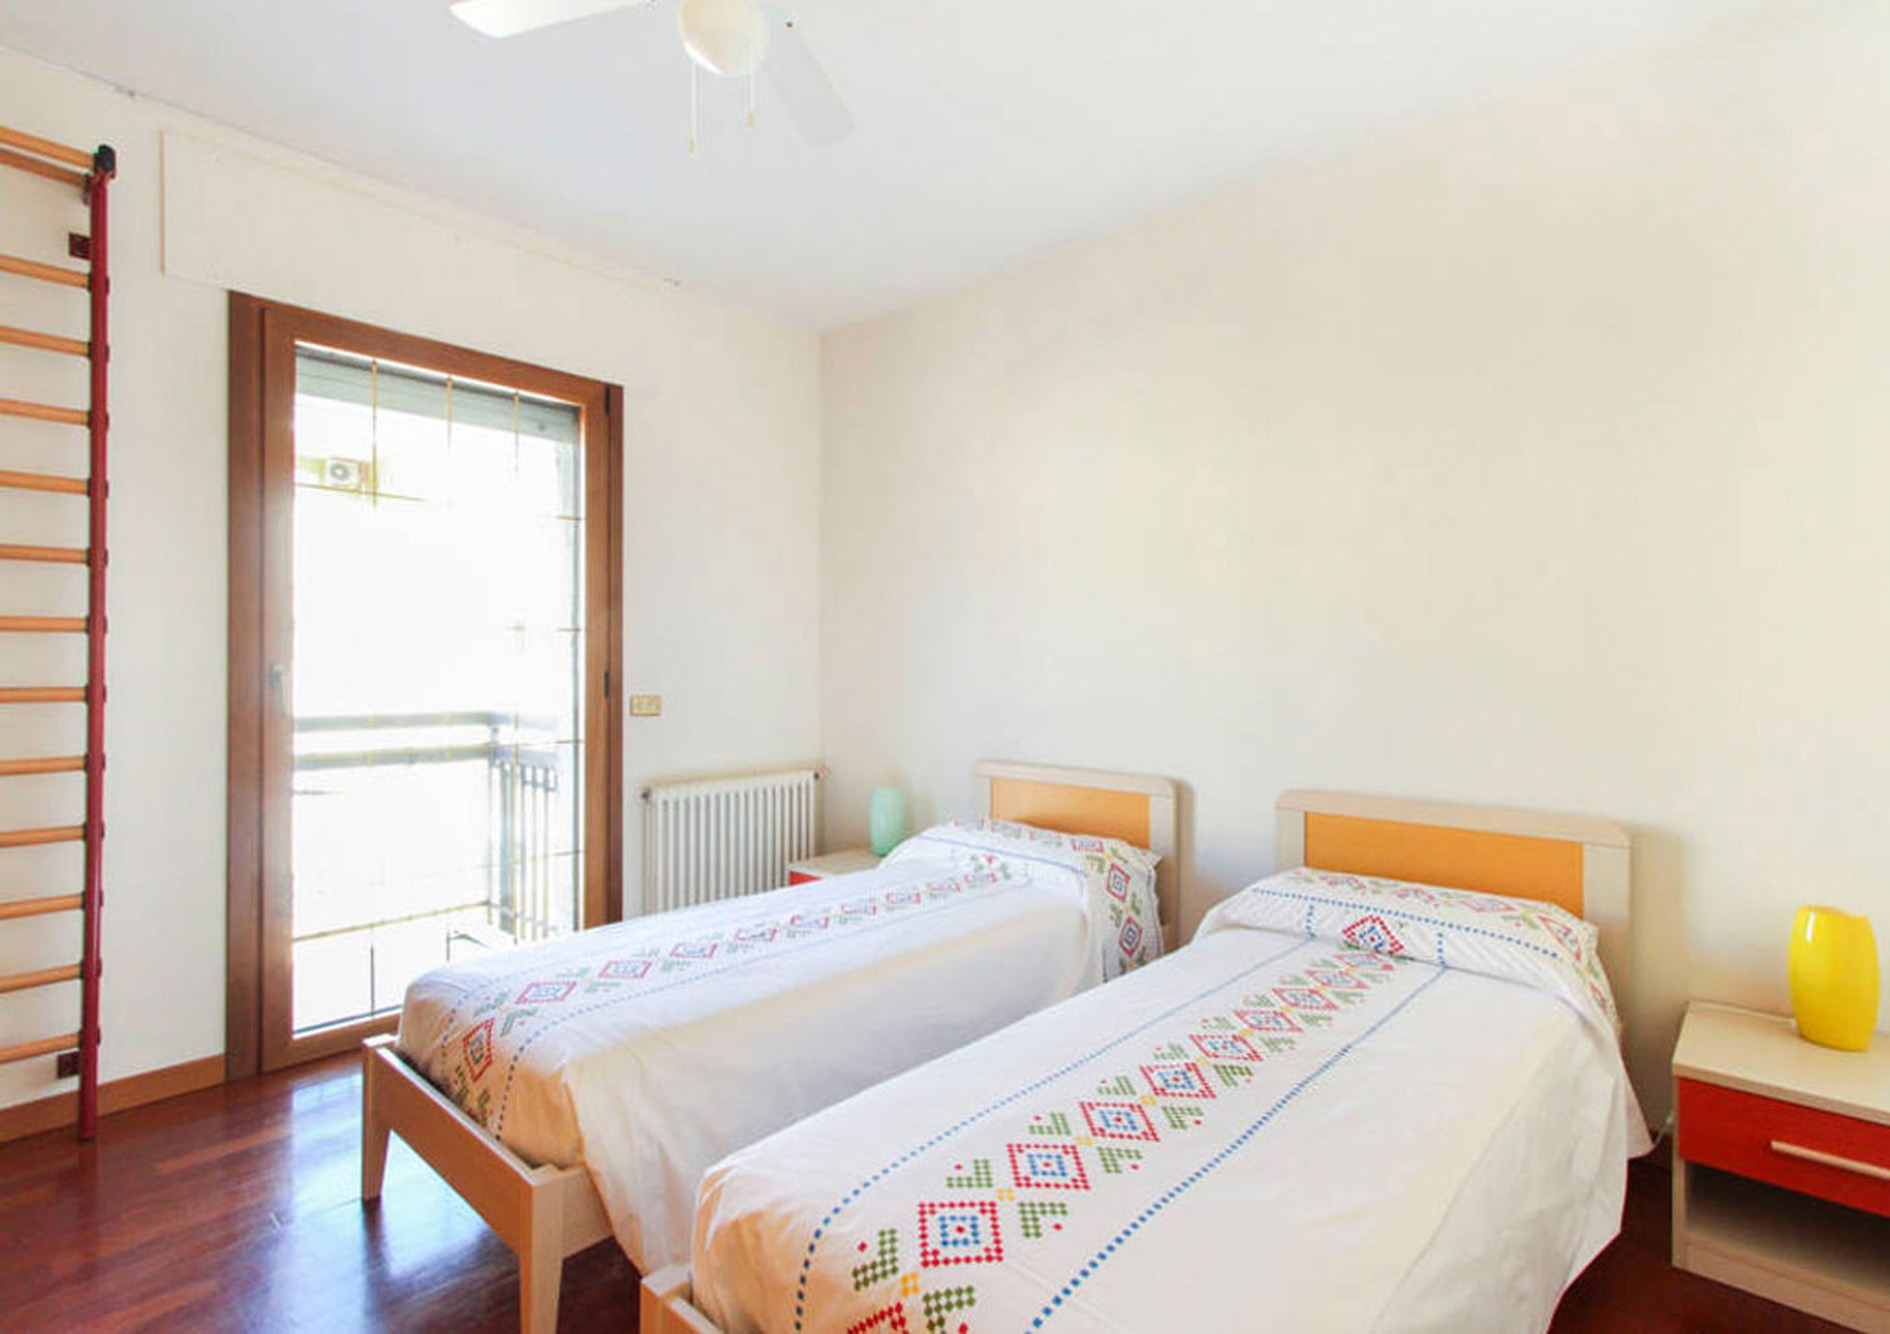 Holiday apartment in Veneto for 4/6 people